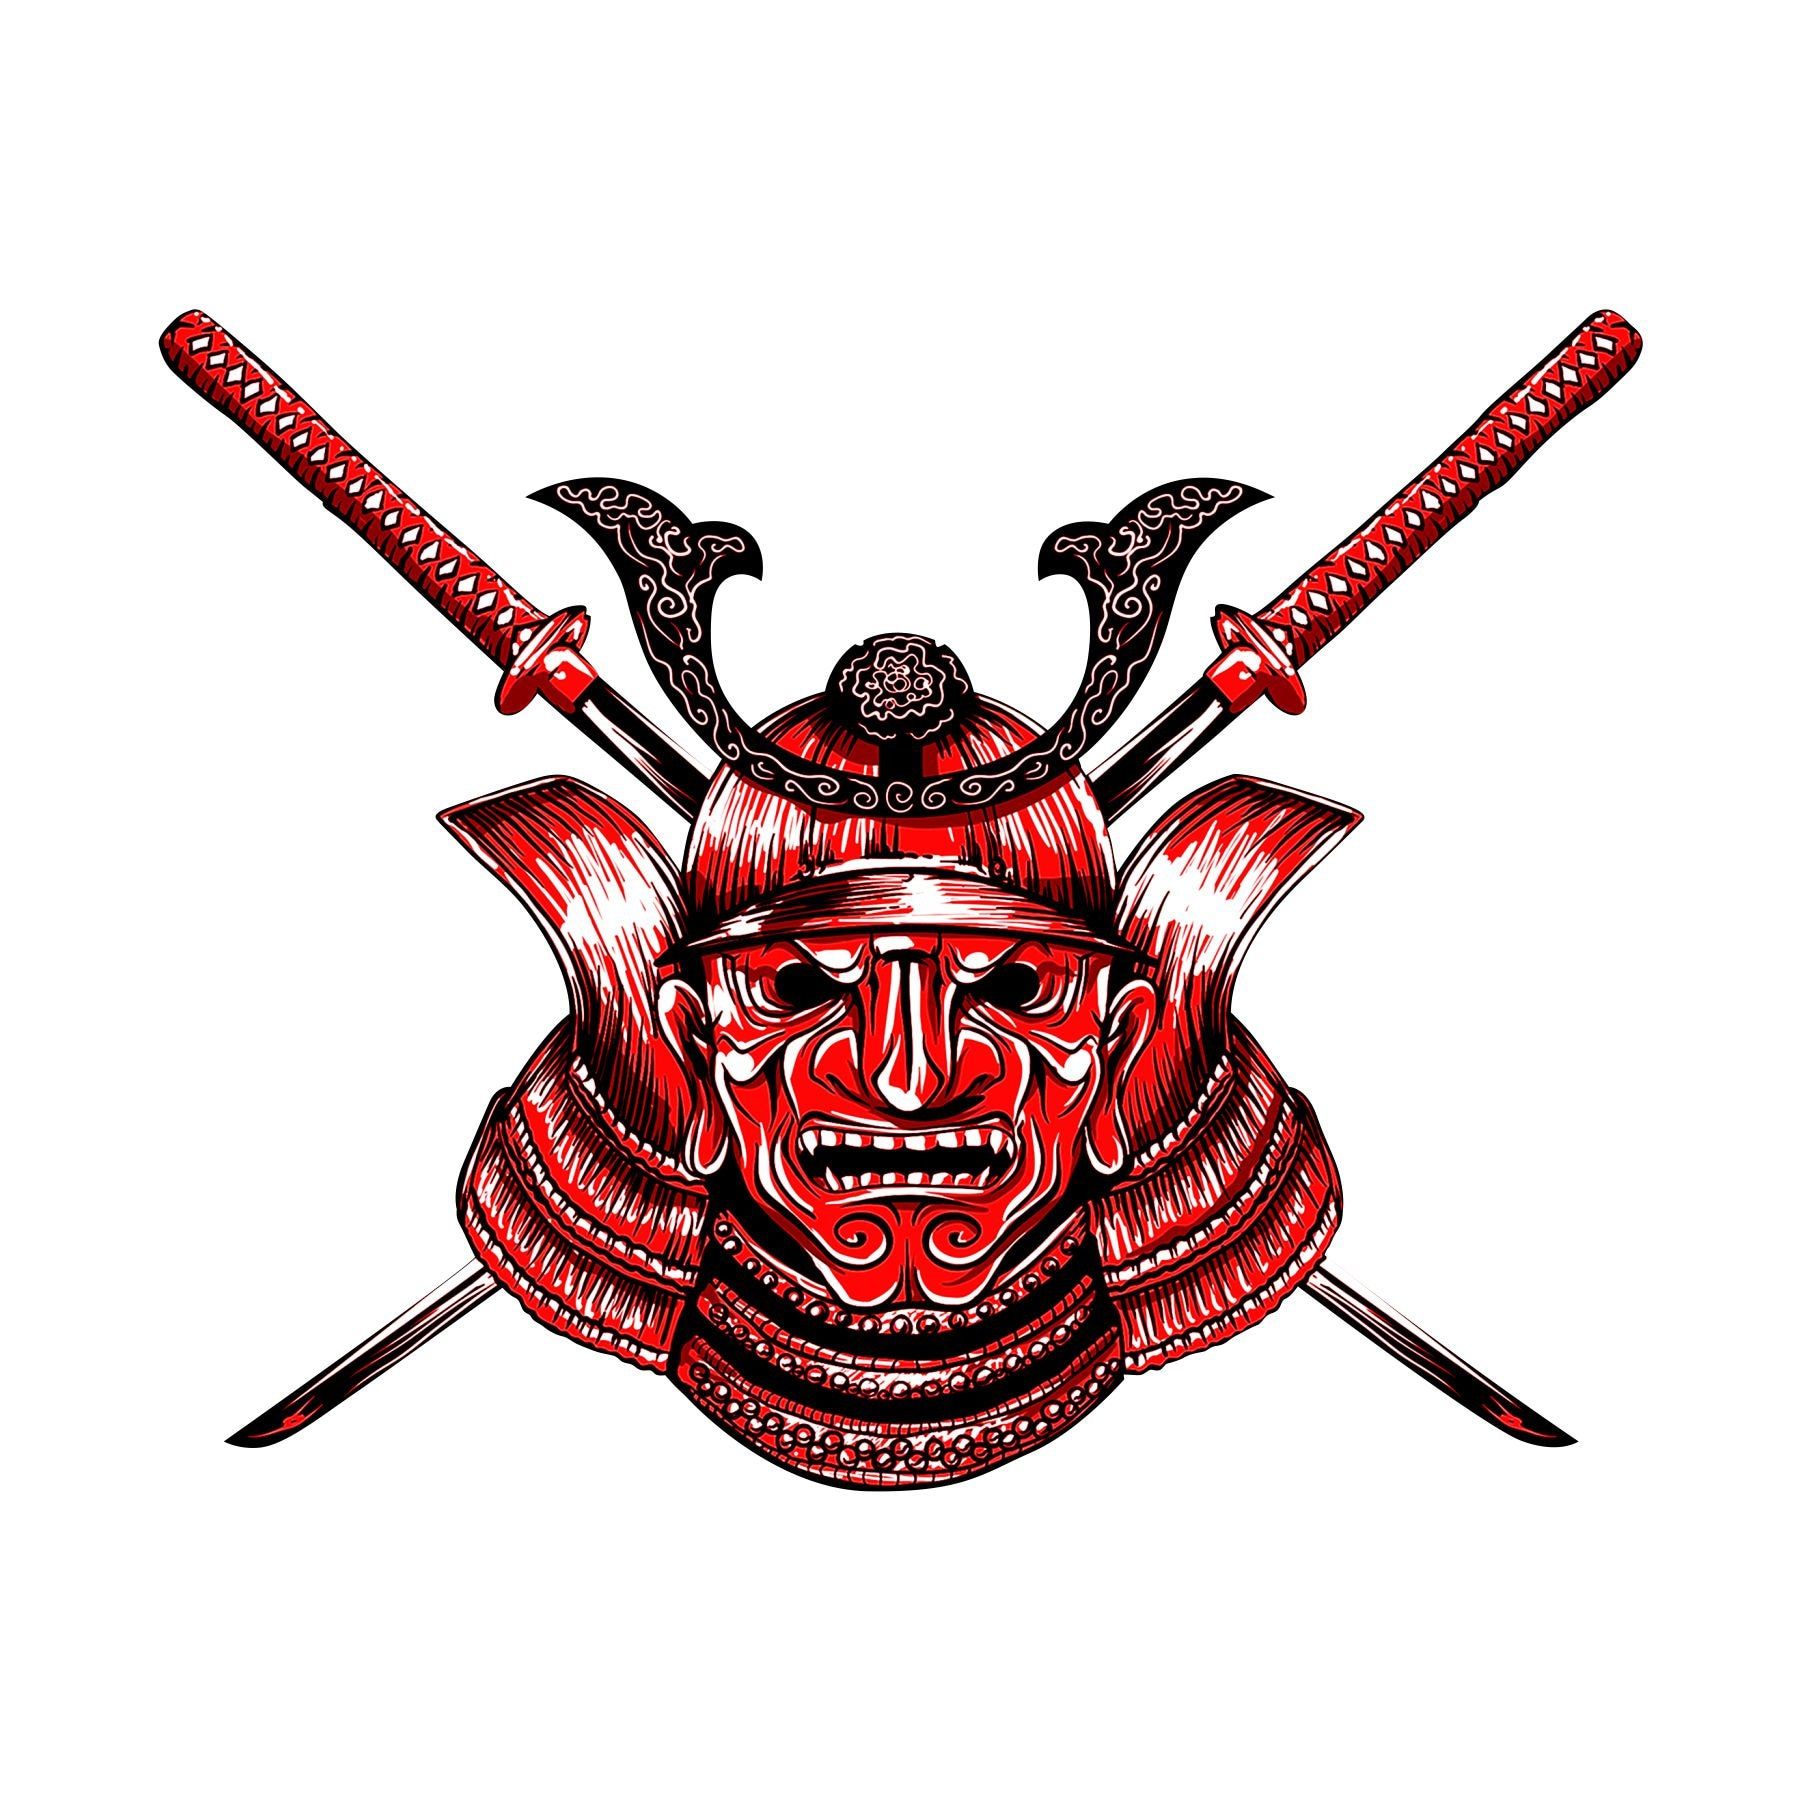 Related images of samurai skull logo stickers